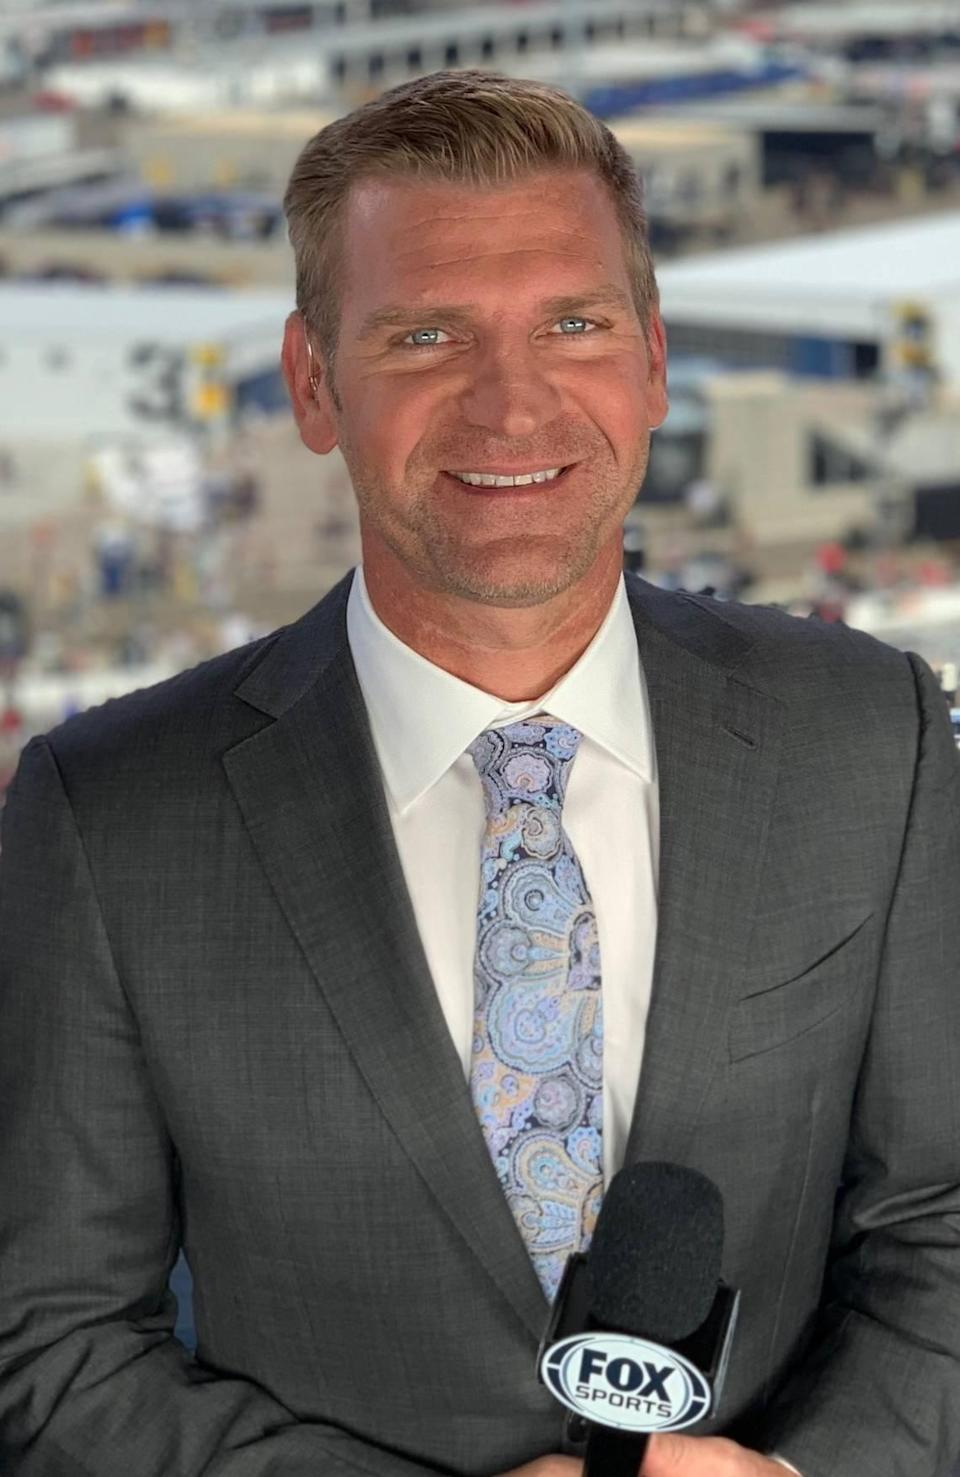 Former driver Clint Bowyer joins the NASCAR on FOX broadcast booth in 2021 as a full-time analyst for the network's Cup Series coverage.